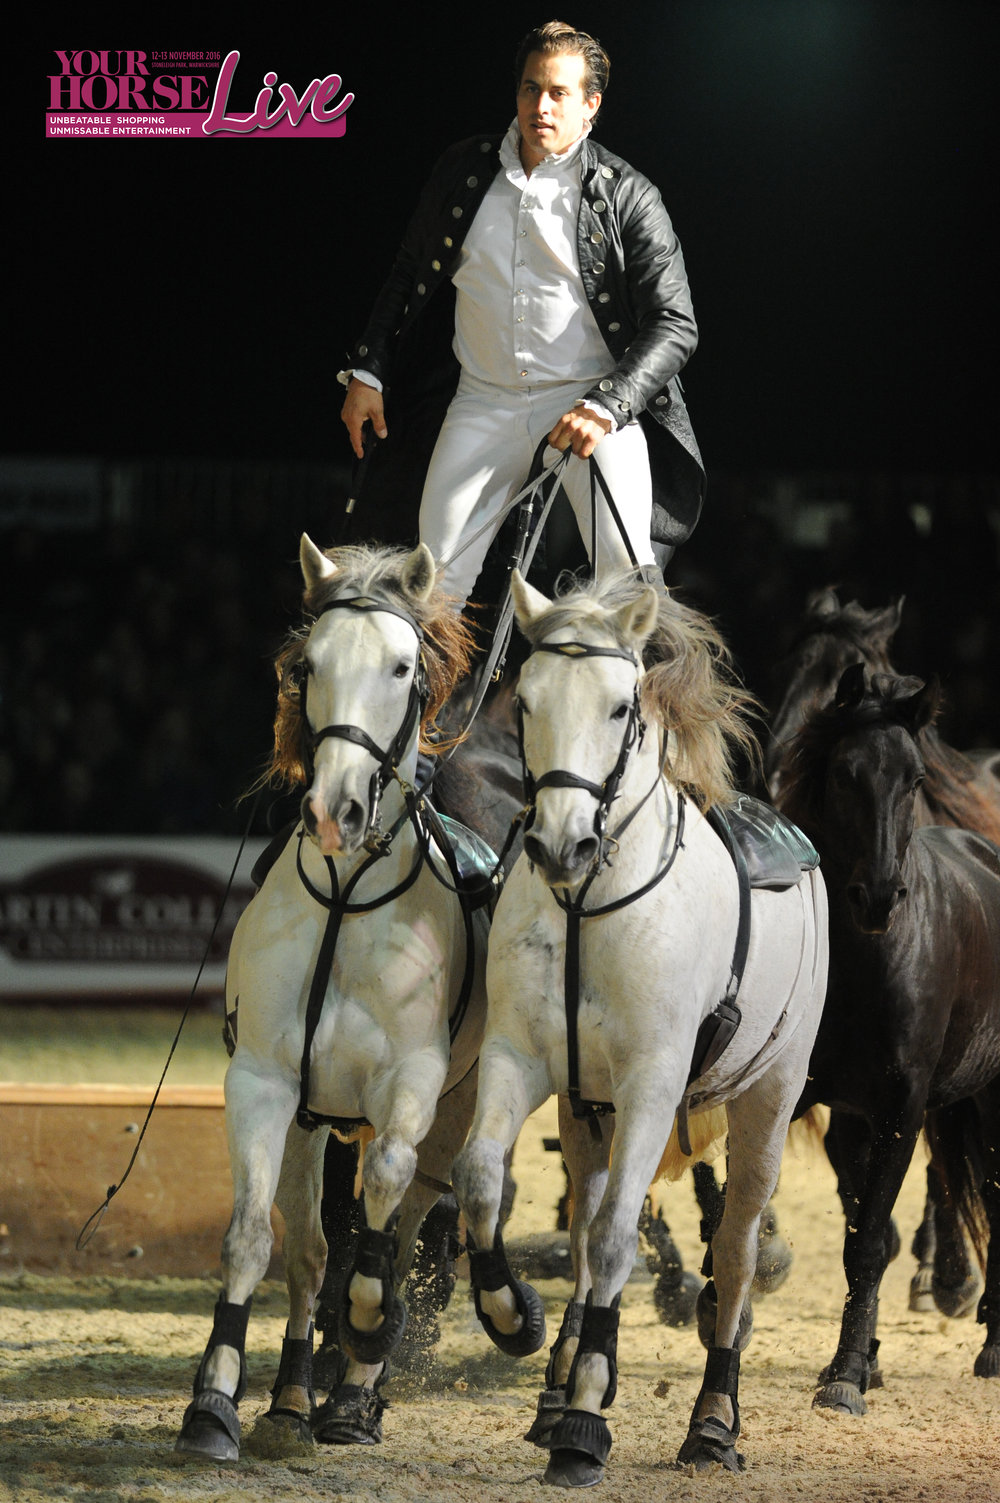 Lorenzo the flying french man at your Horse Live.jpg